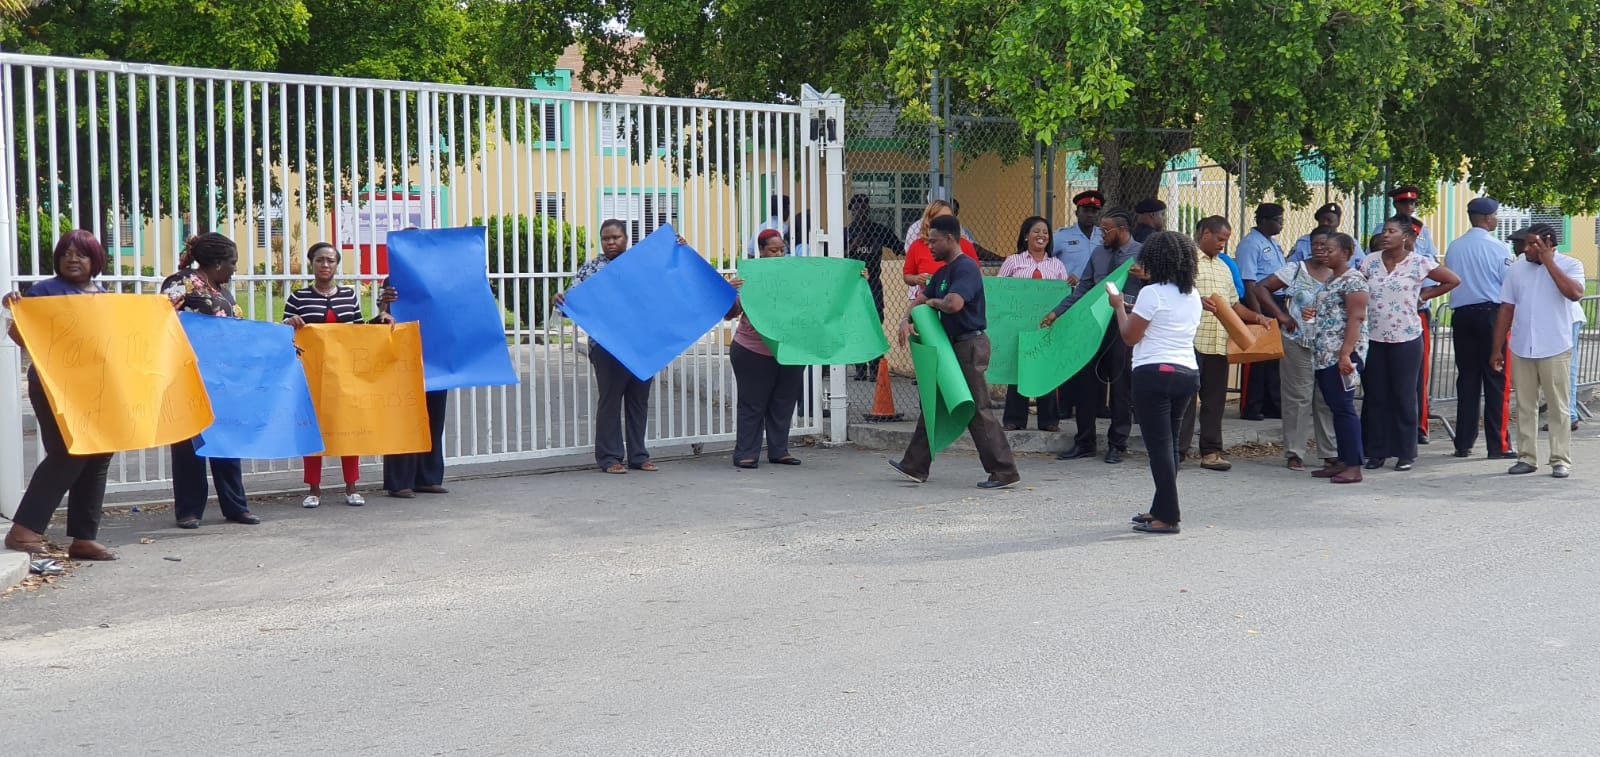 Carlton E. Francis Primary School enters third week of protest